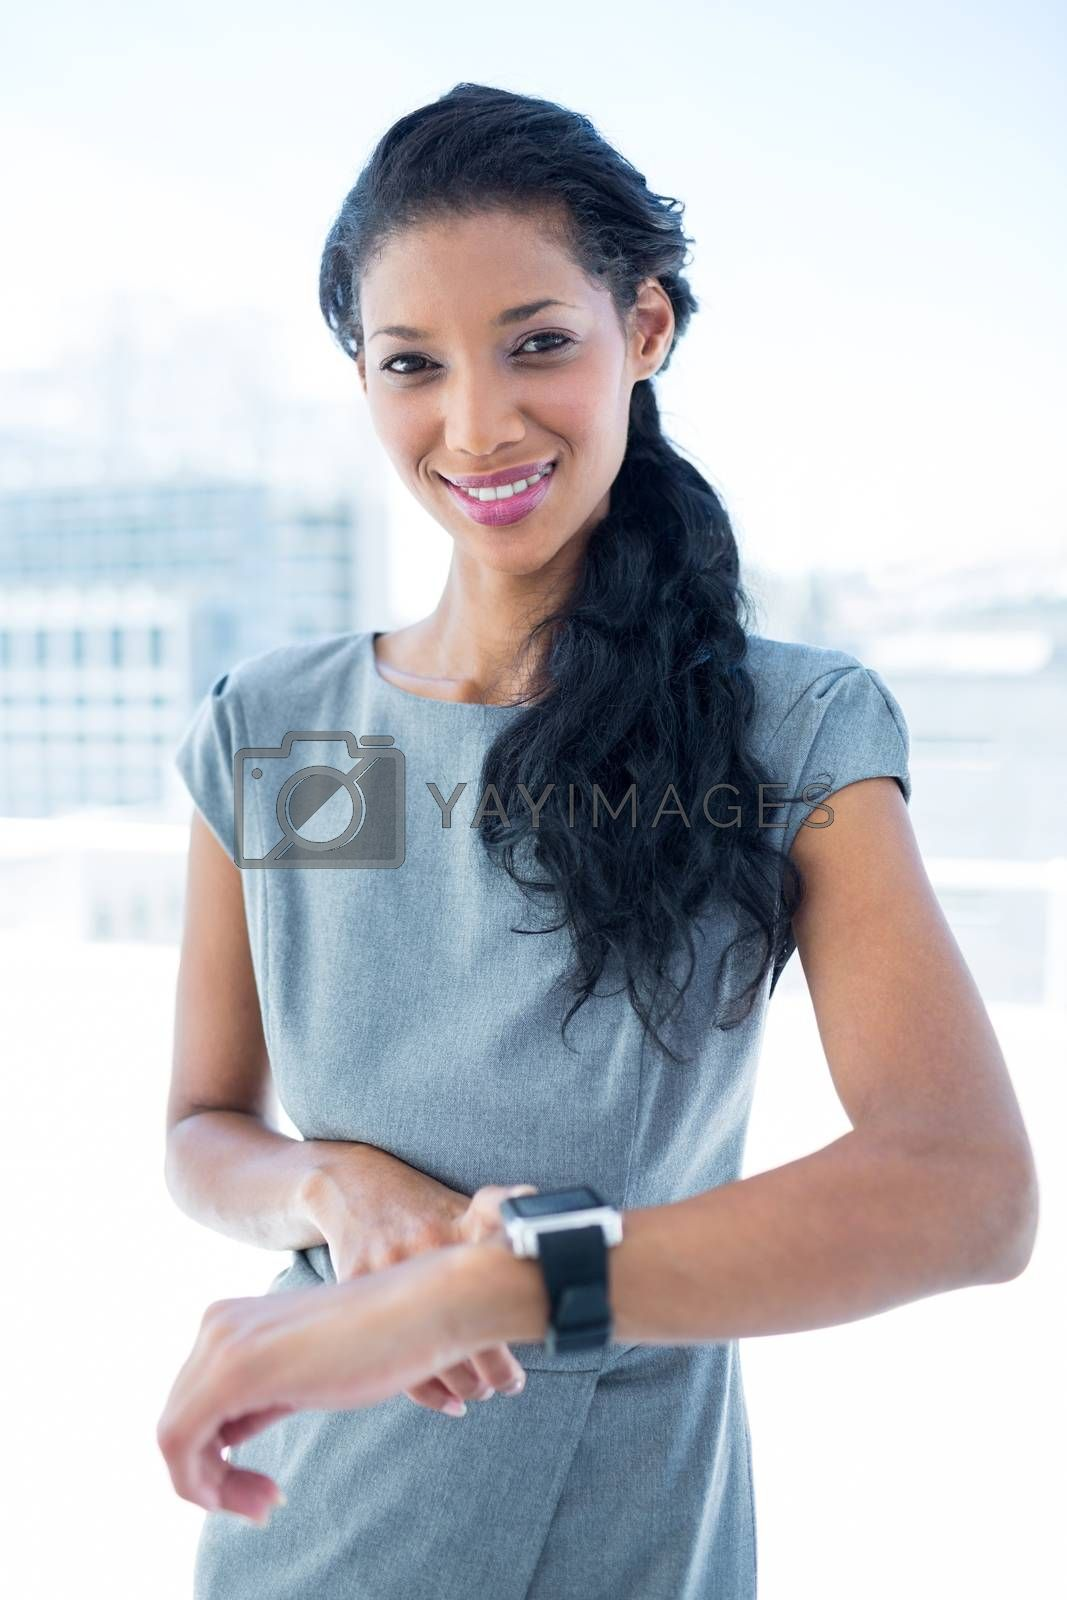 Royalty free image of Smiling businesswoman using her smartwatch by Wavebreakmedia